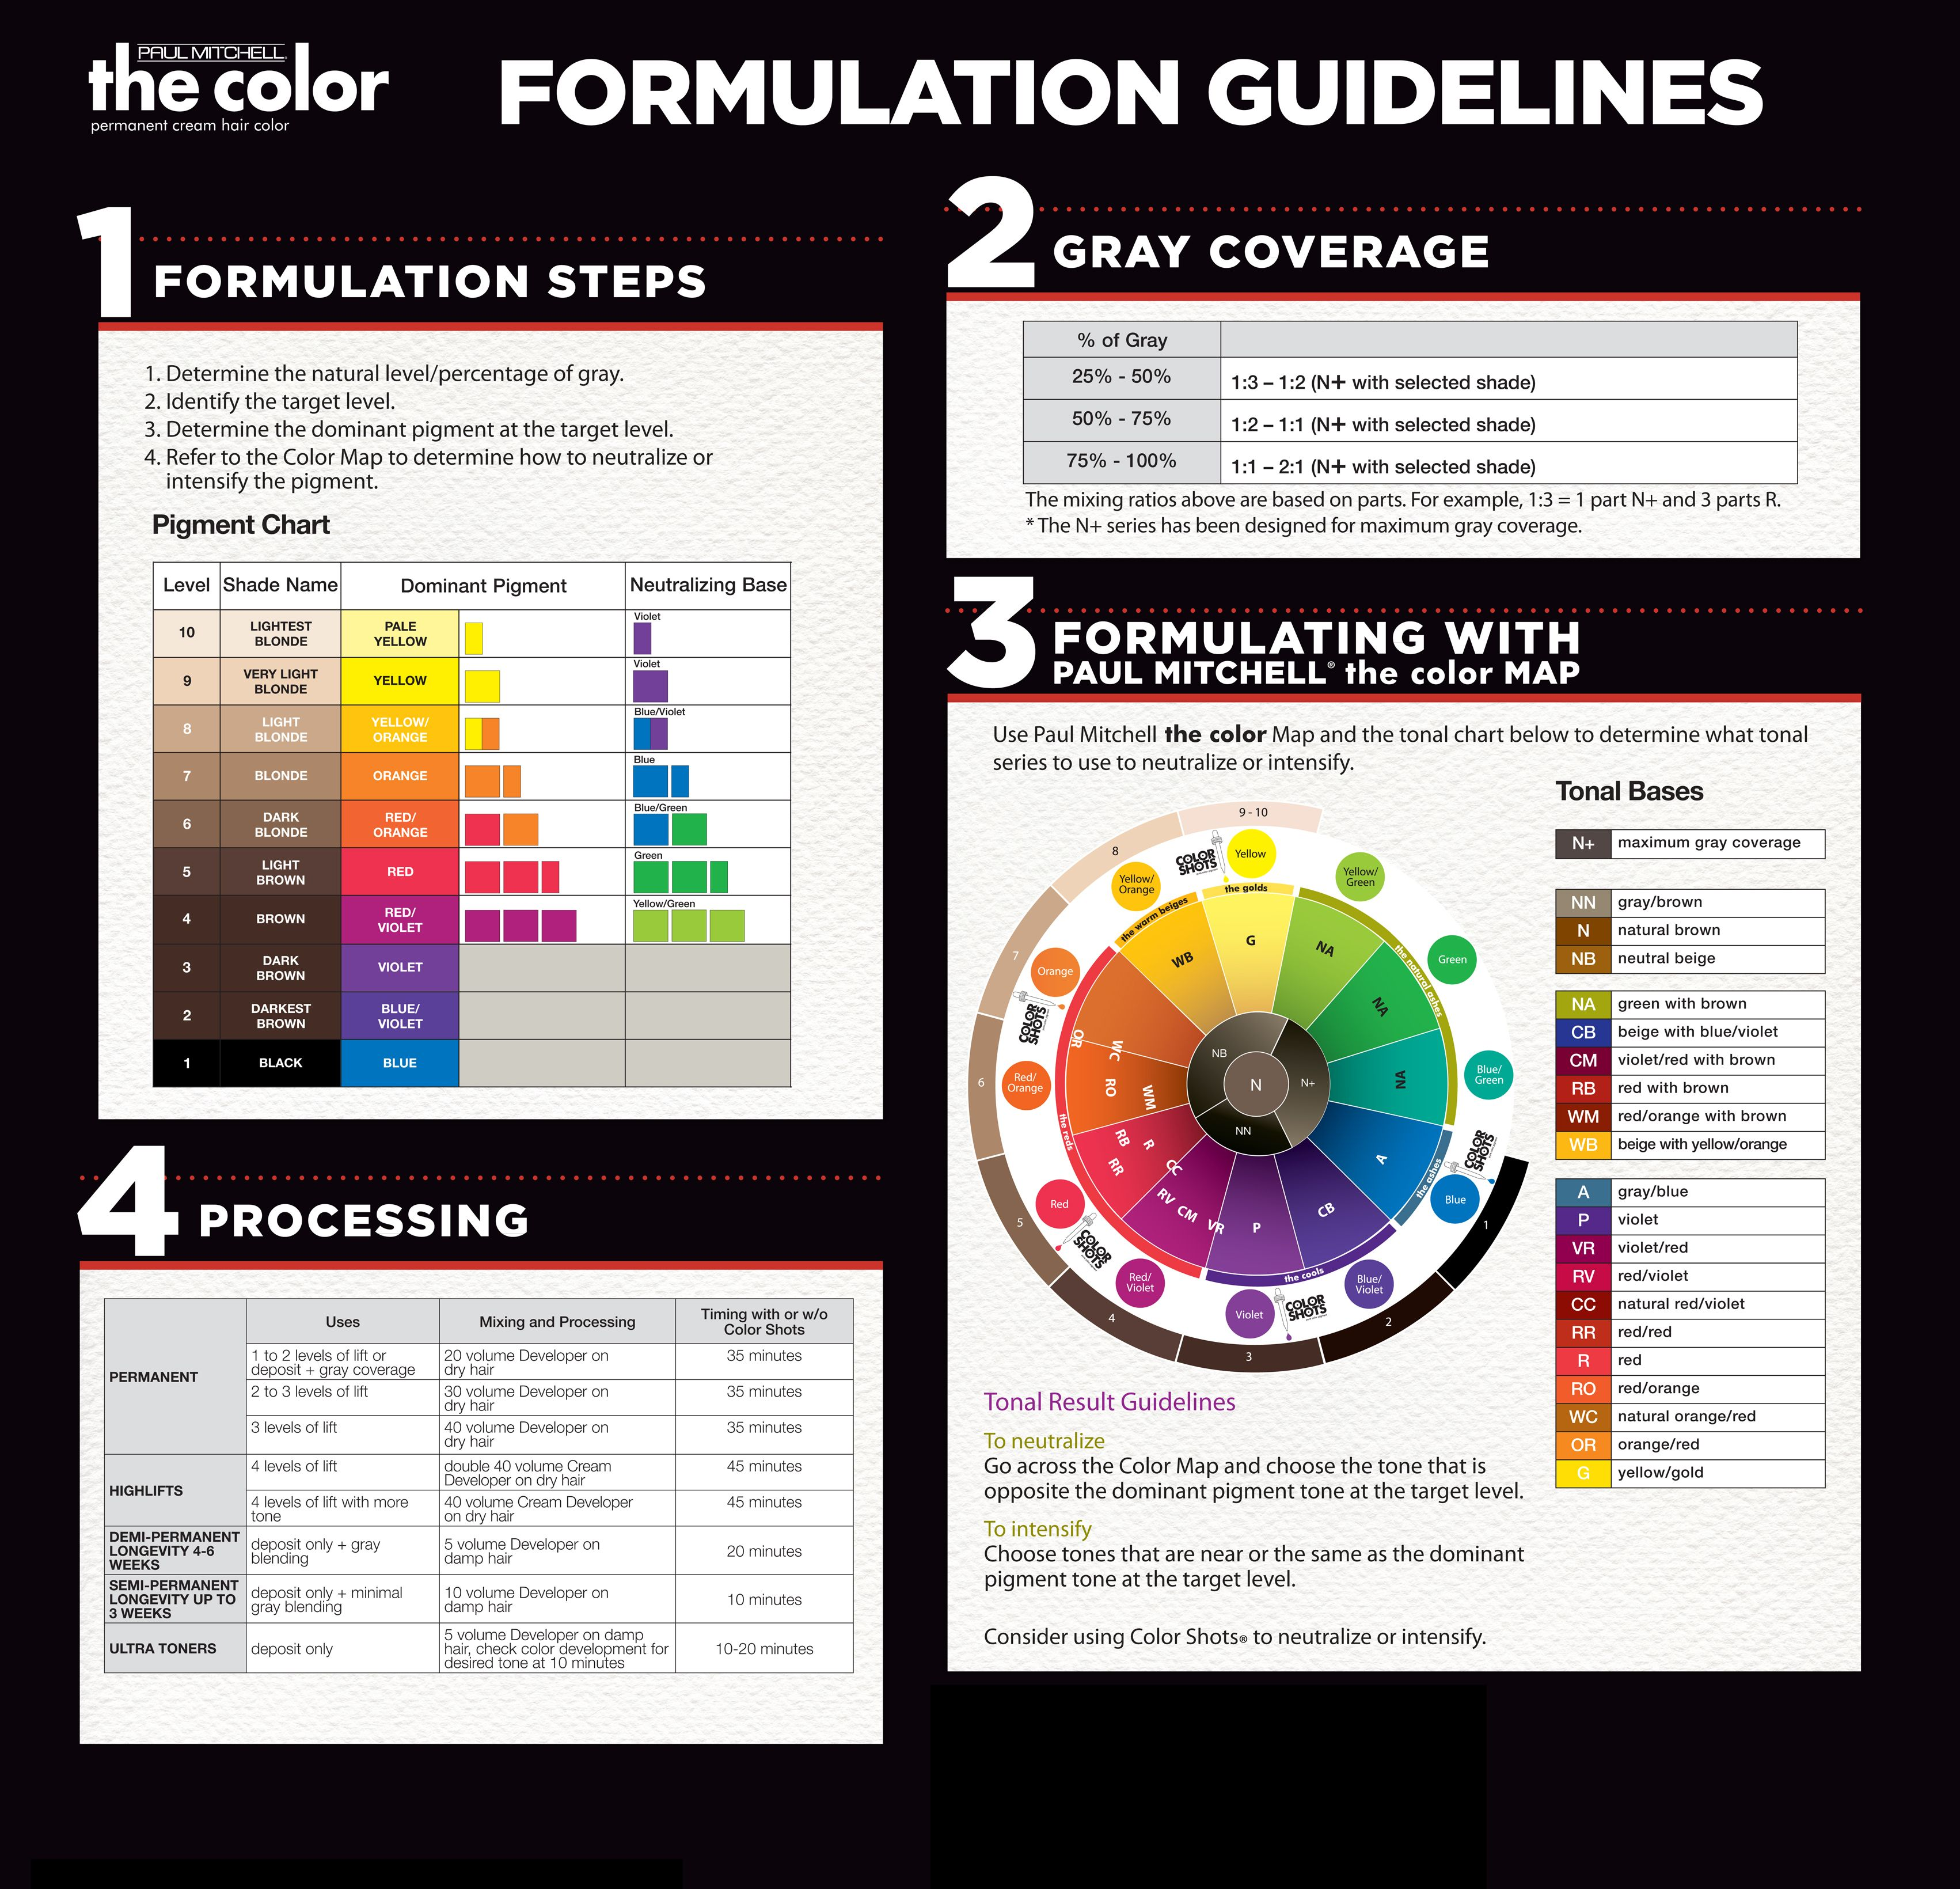 Paul Mitchell the color Formulation Guidelines